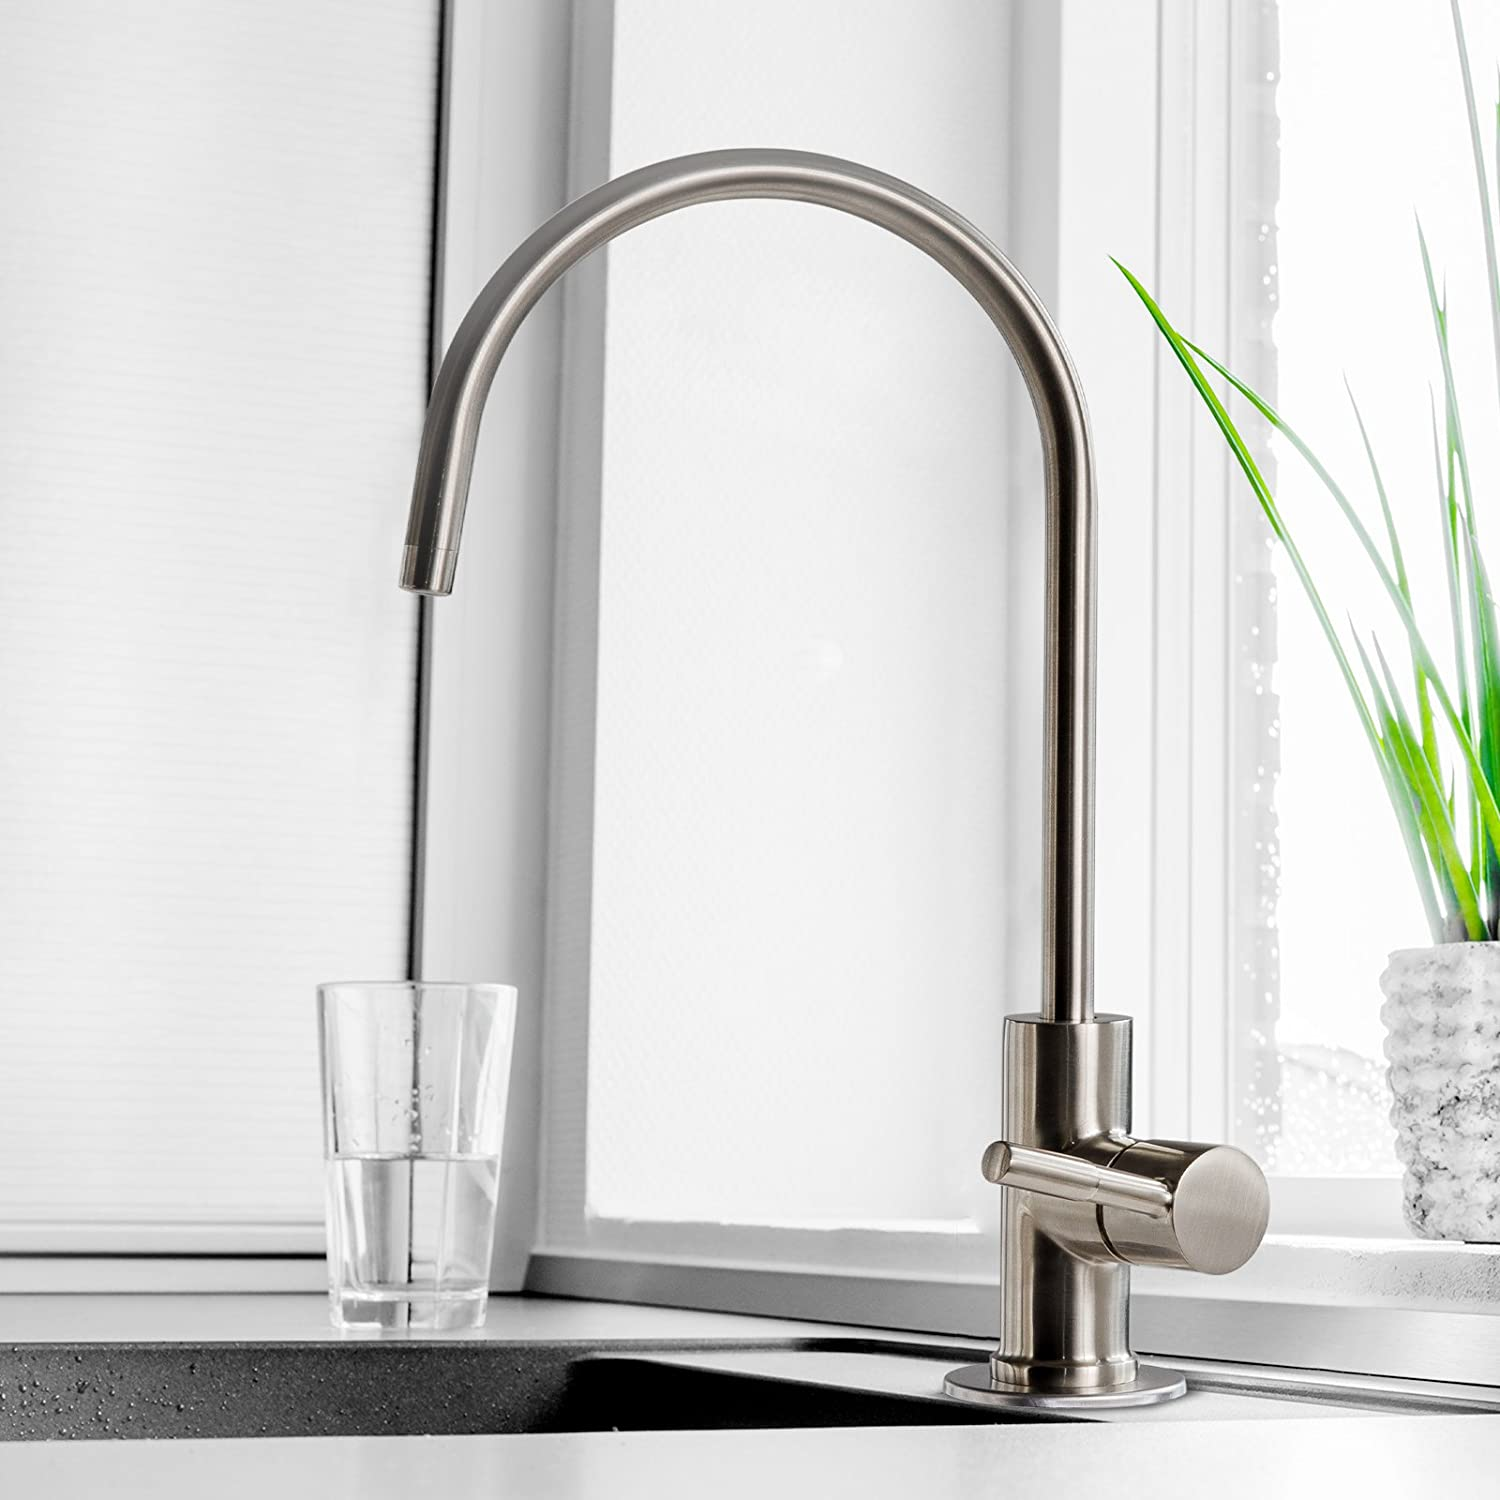 iSpring GA1-BN RO Faucet Installed